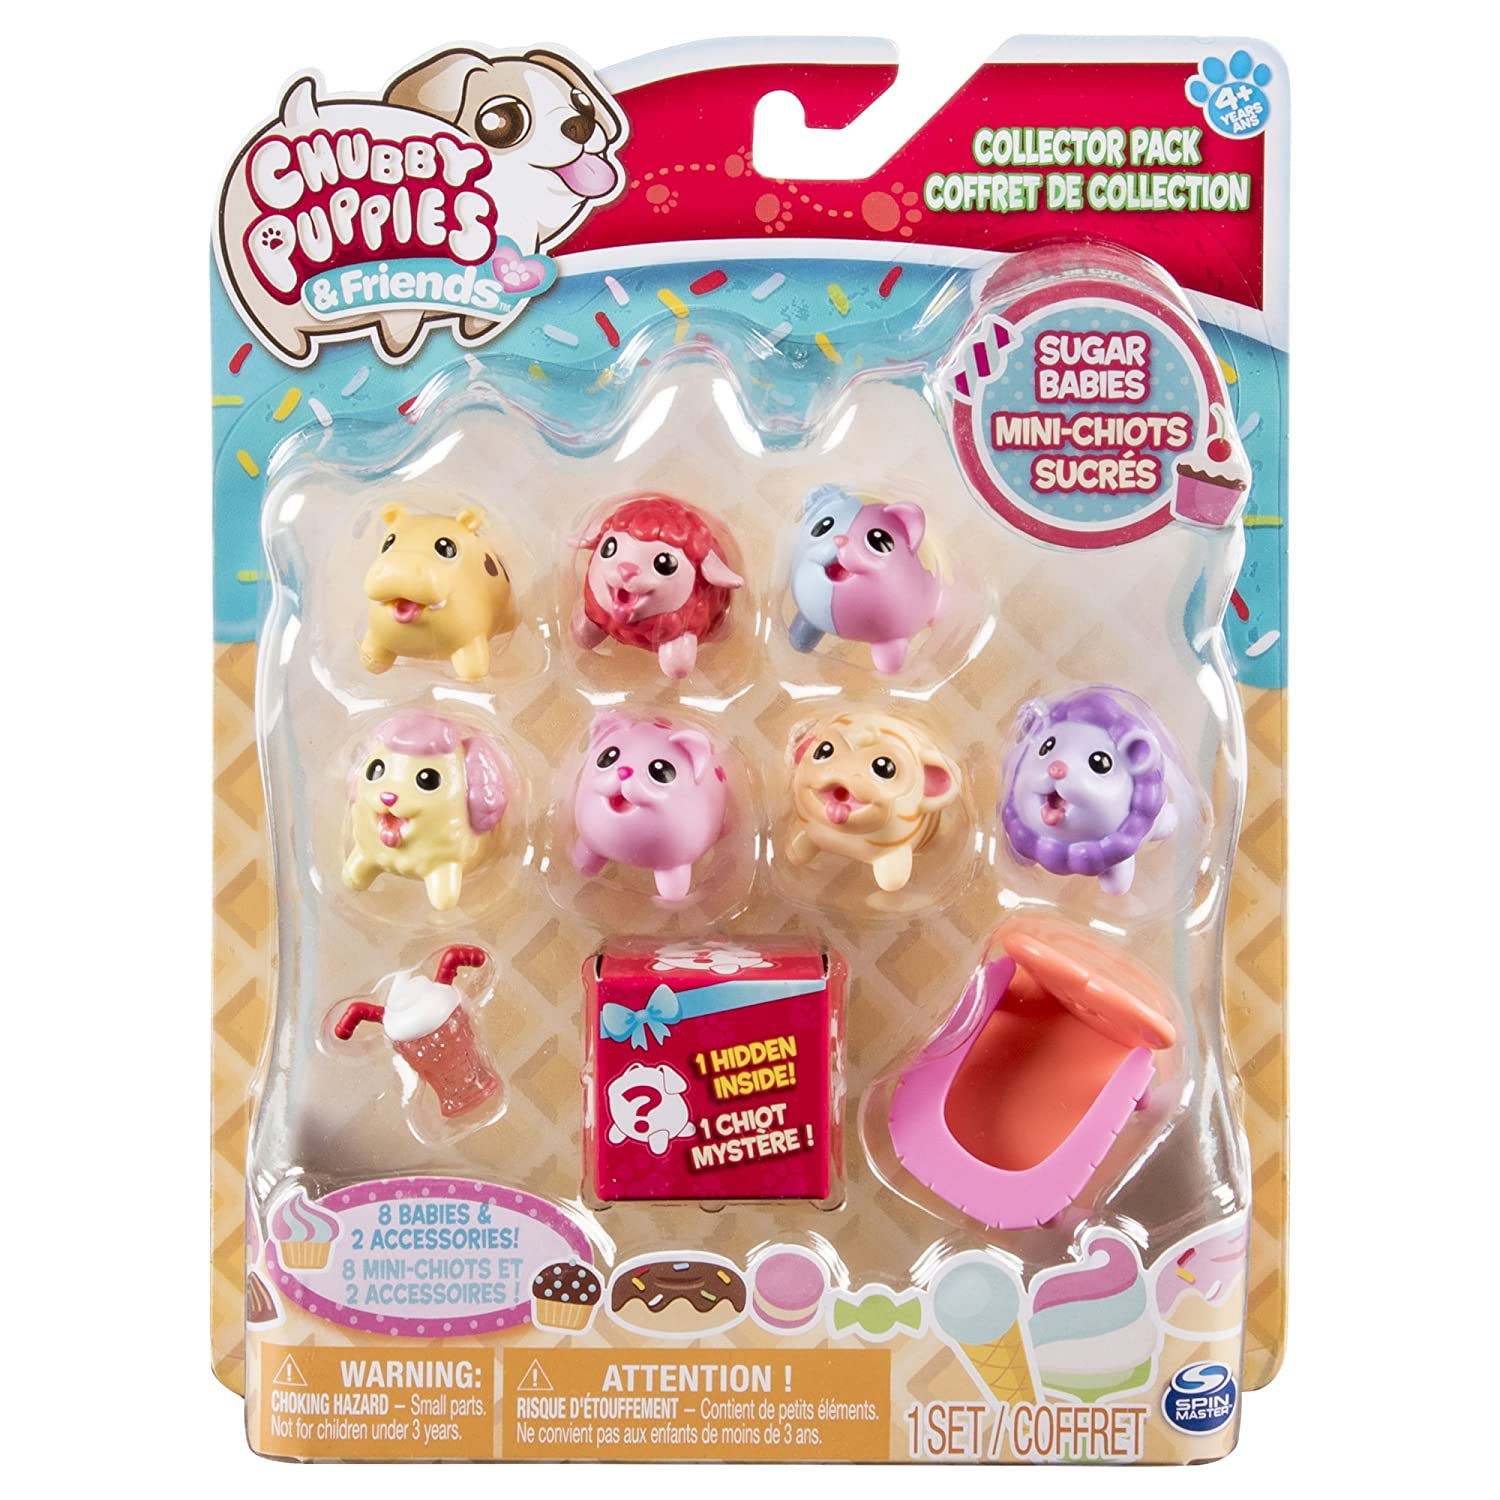 Chubby Puppies & Friends Collector Pack Sugar Babies (10 Pack) Spin Master 20090579